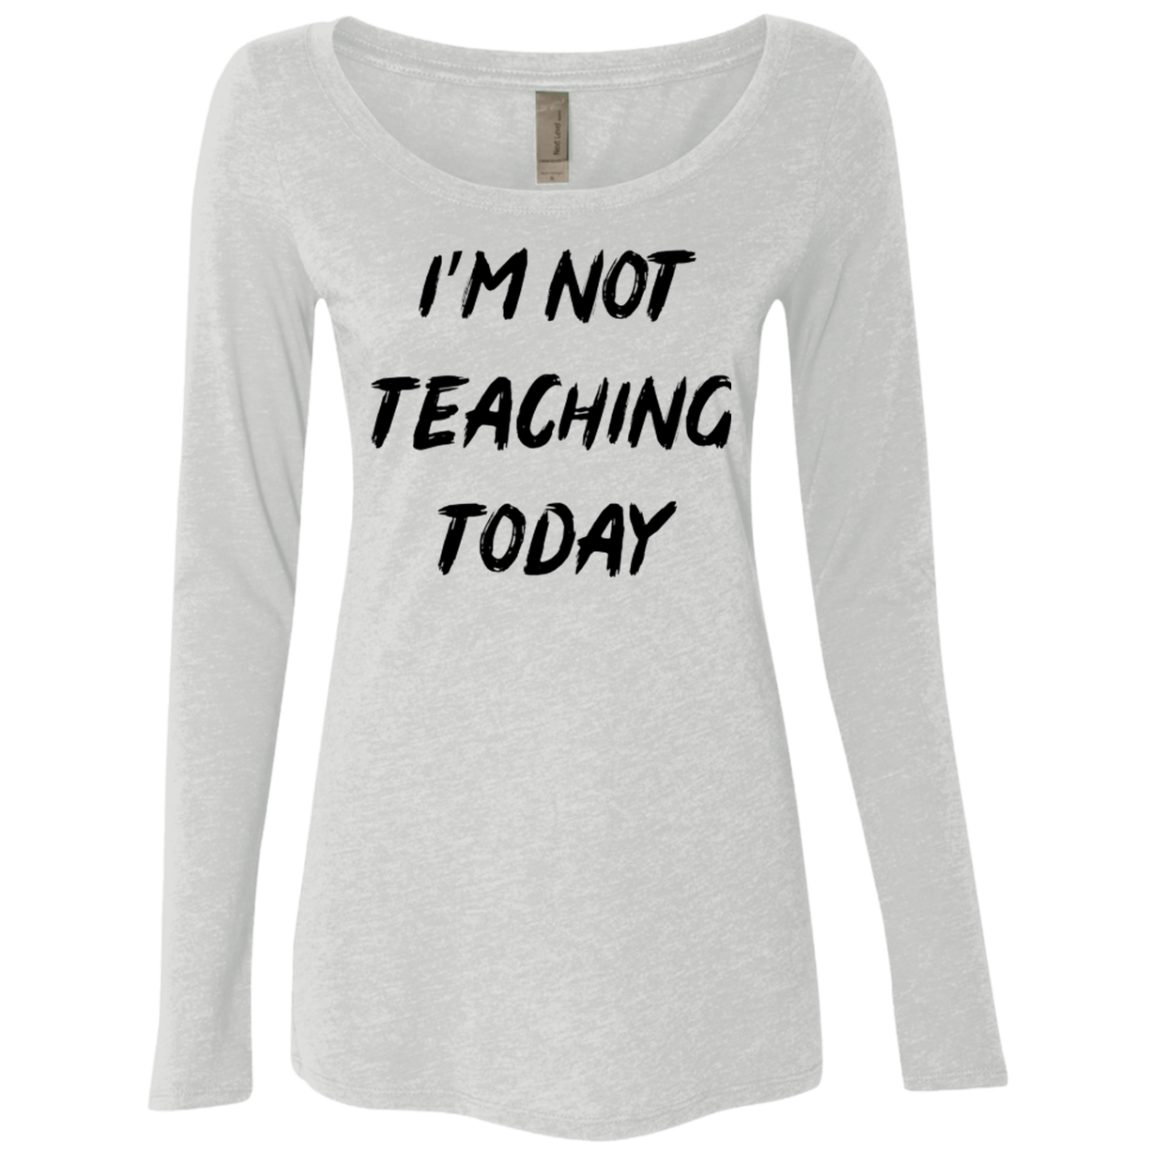 I'm Not Teaching Today Women's Long Sleeve Tee